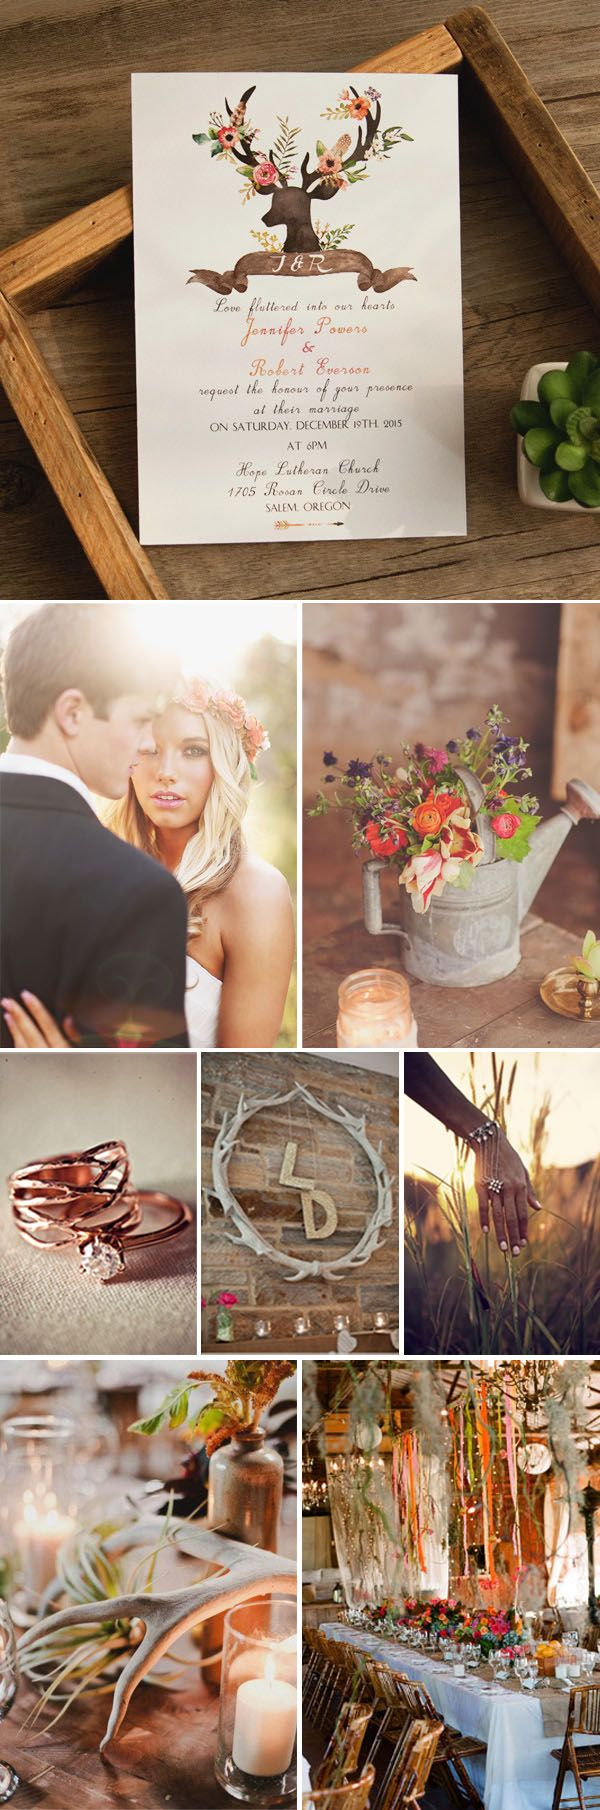 Seven Popular Rustic Wedding Invitation Styles for 2016 Spring & Summer Weddings